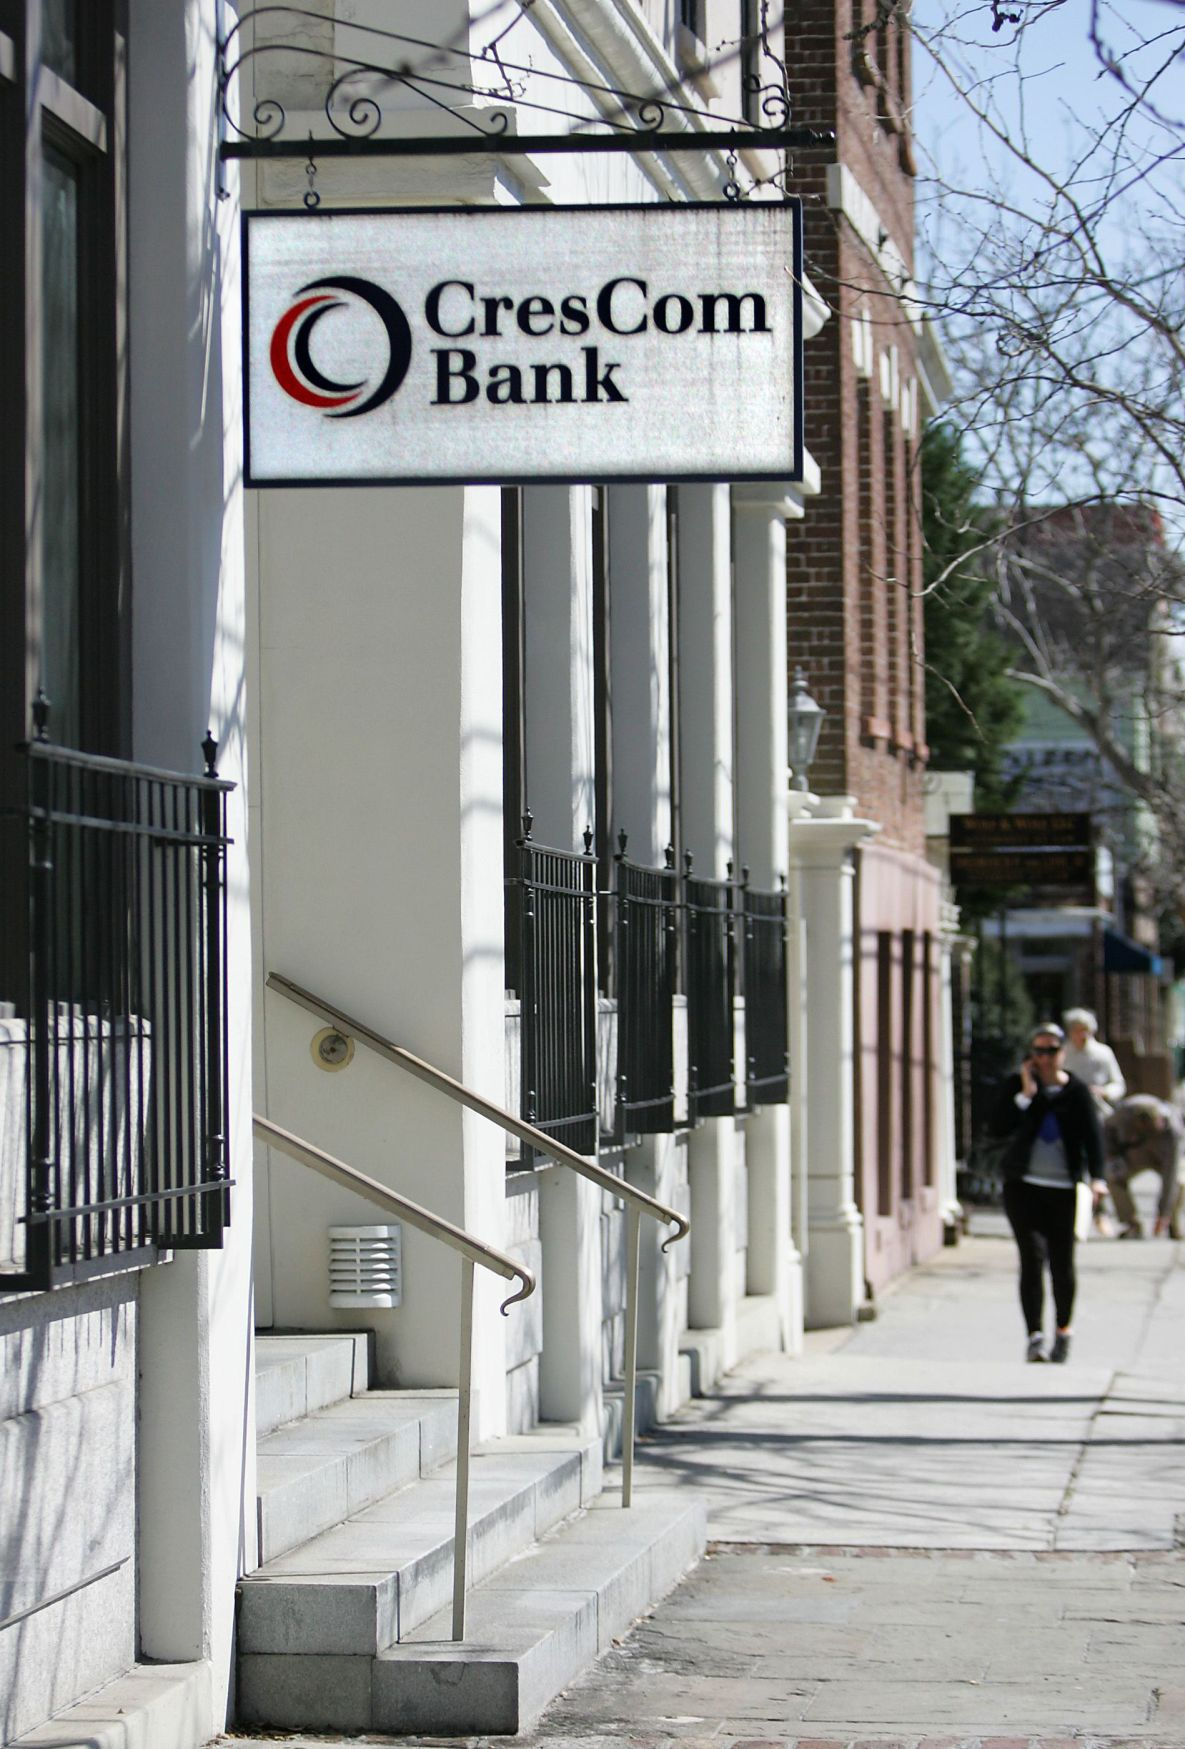 Branching out CresCom Bank expands reach up S.C., N.C. coast